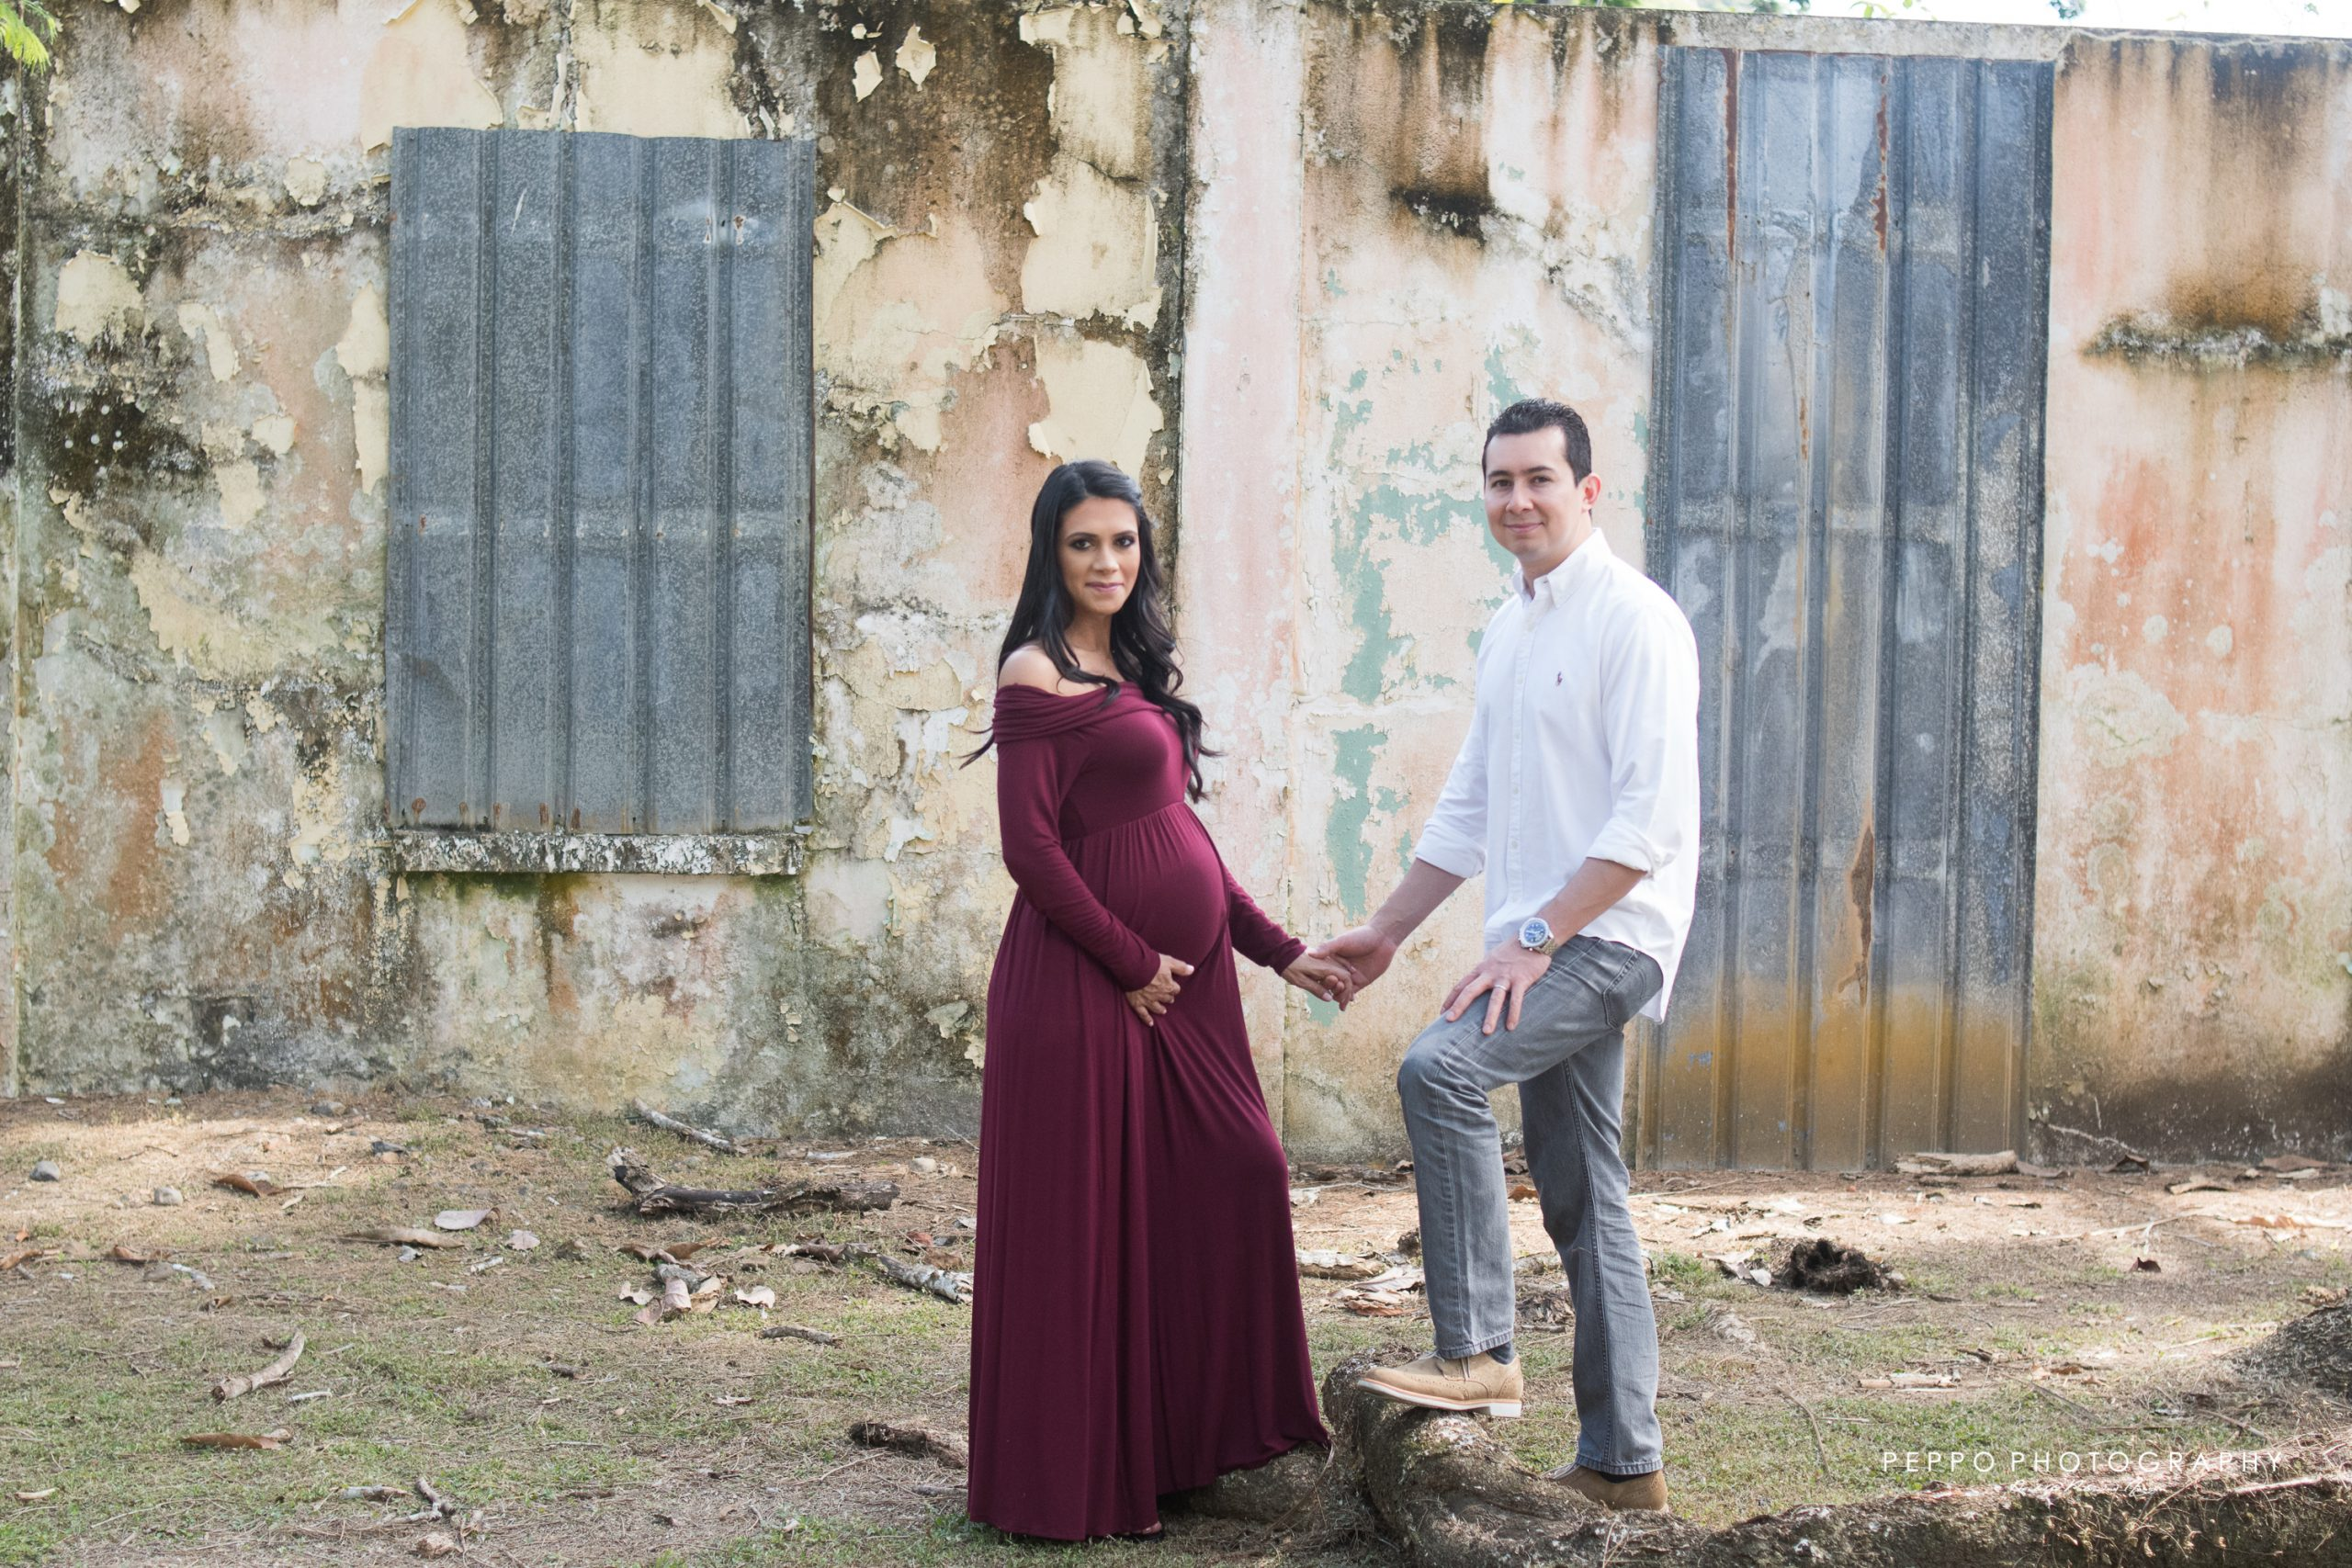 Maternity Sessions at Gamboa-Panamá